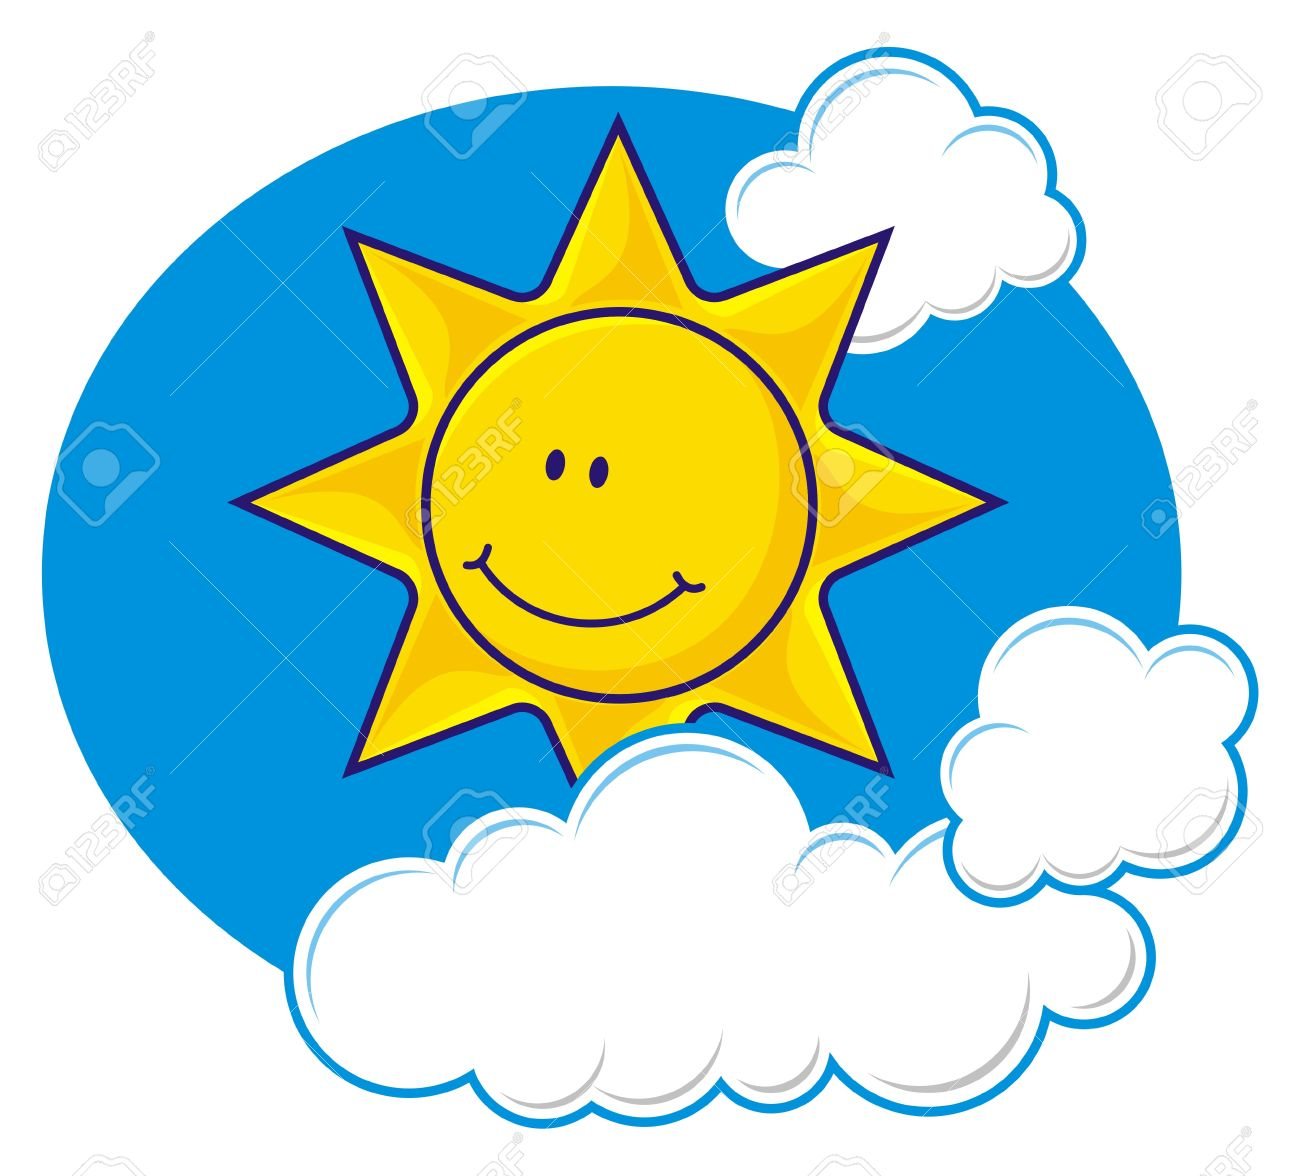 Cartoon of a smiling sun with fluffy clouds - 5164152